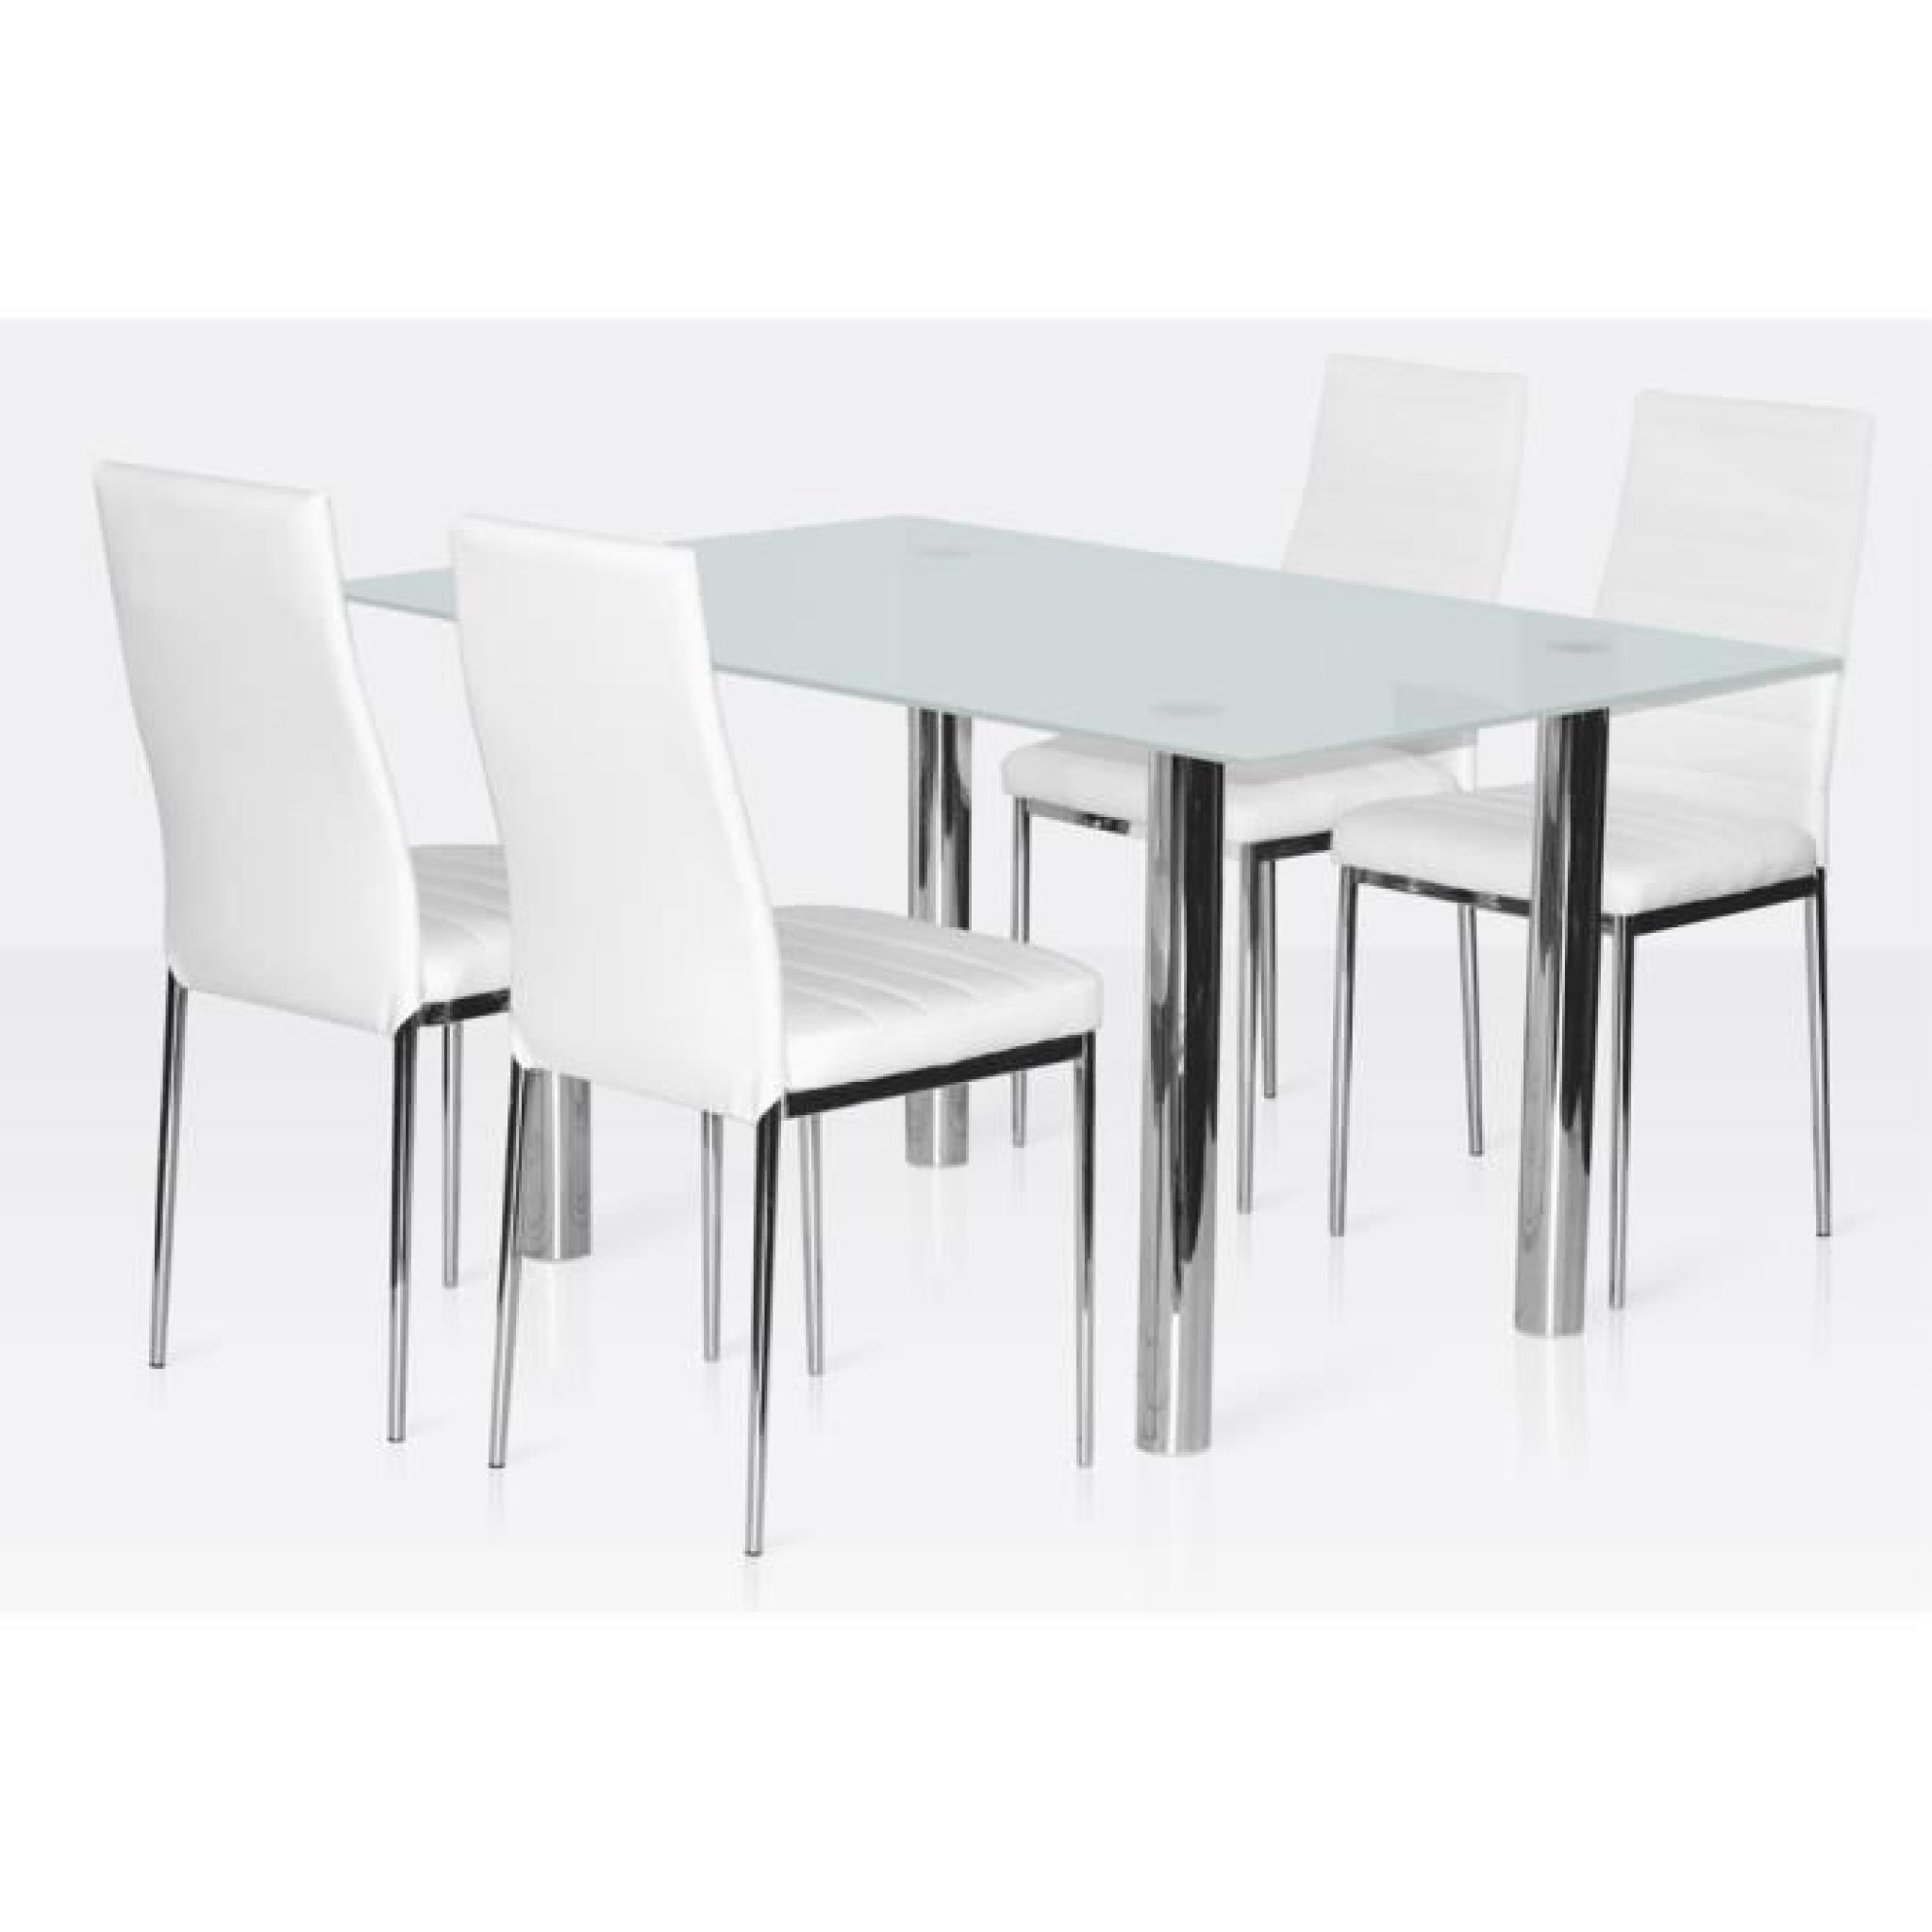 Ensemble salle manger 4 chaises table en verre blanc for Ensemble buffet table manger